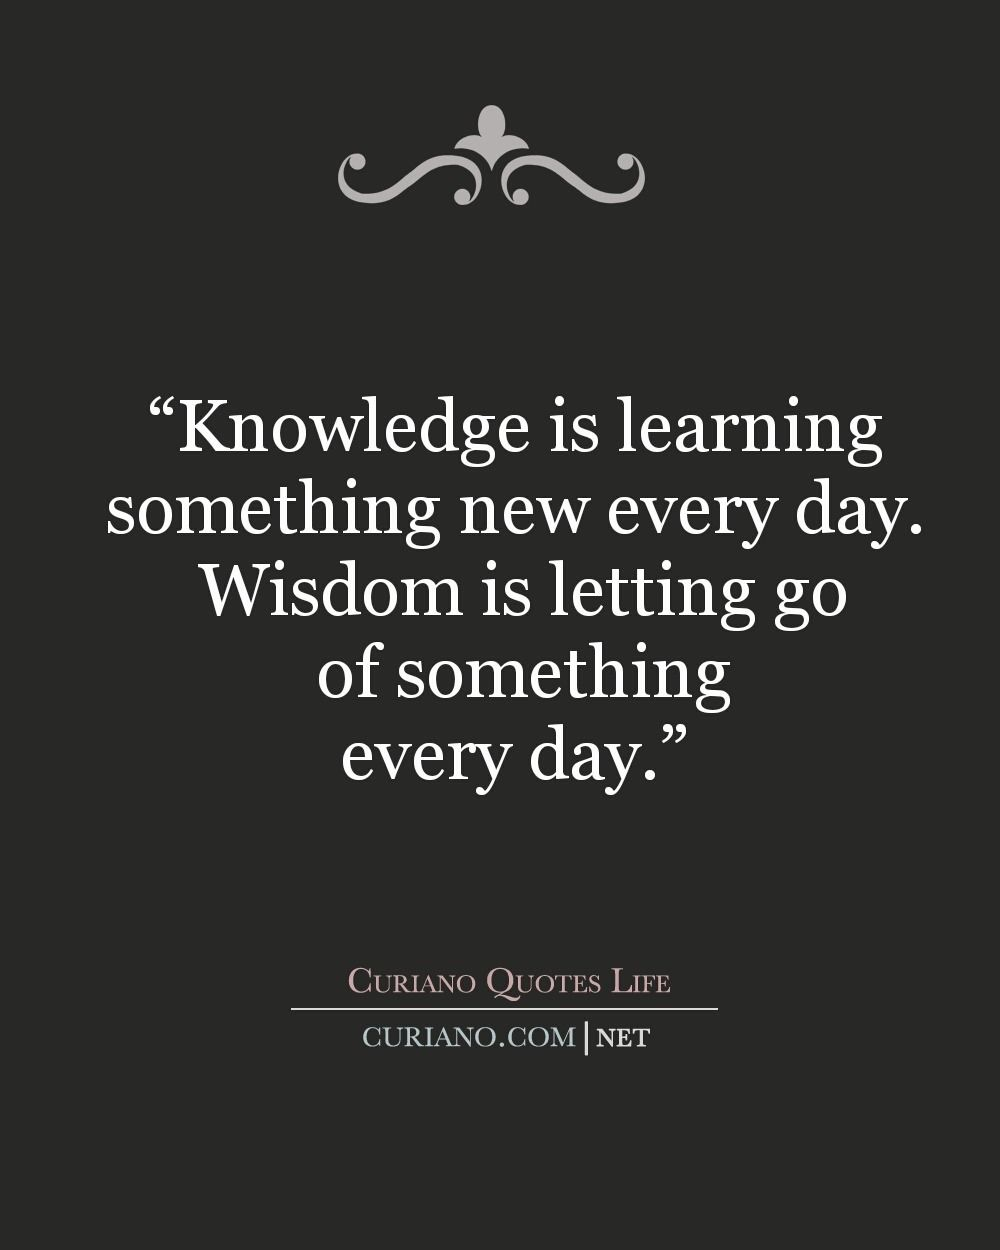 Moving On Quote This Blog Curiano Quotes Life Shows Quotes Best Life Quote